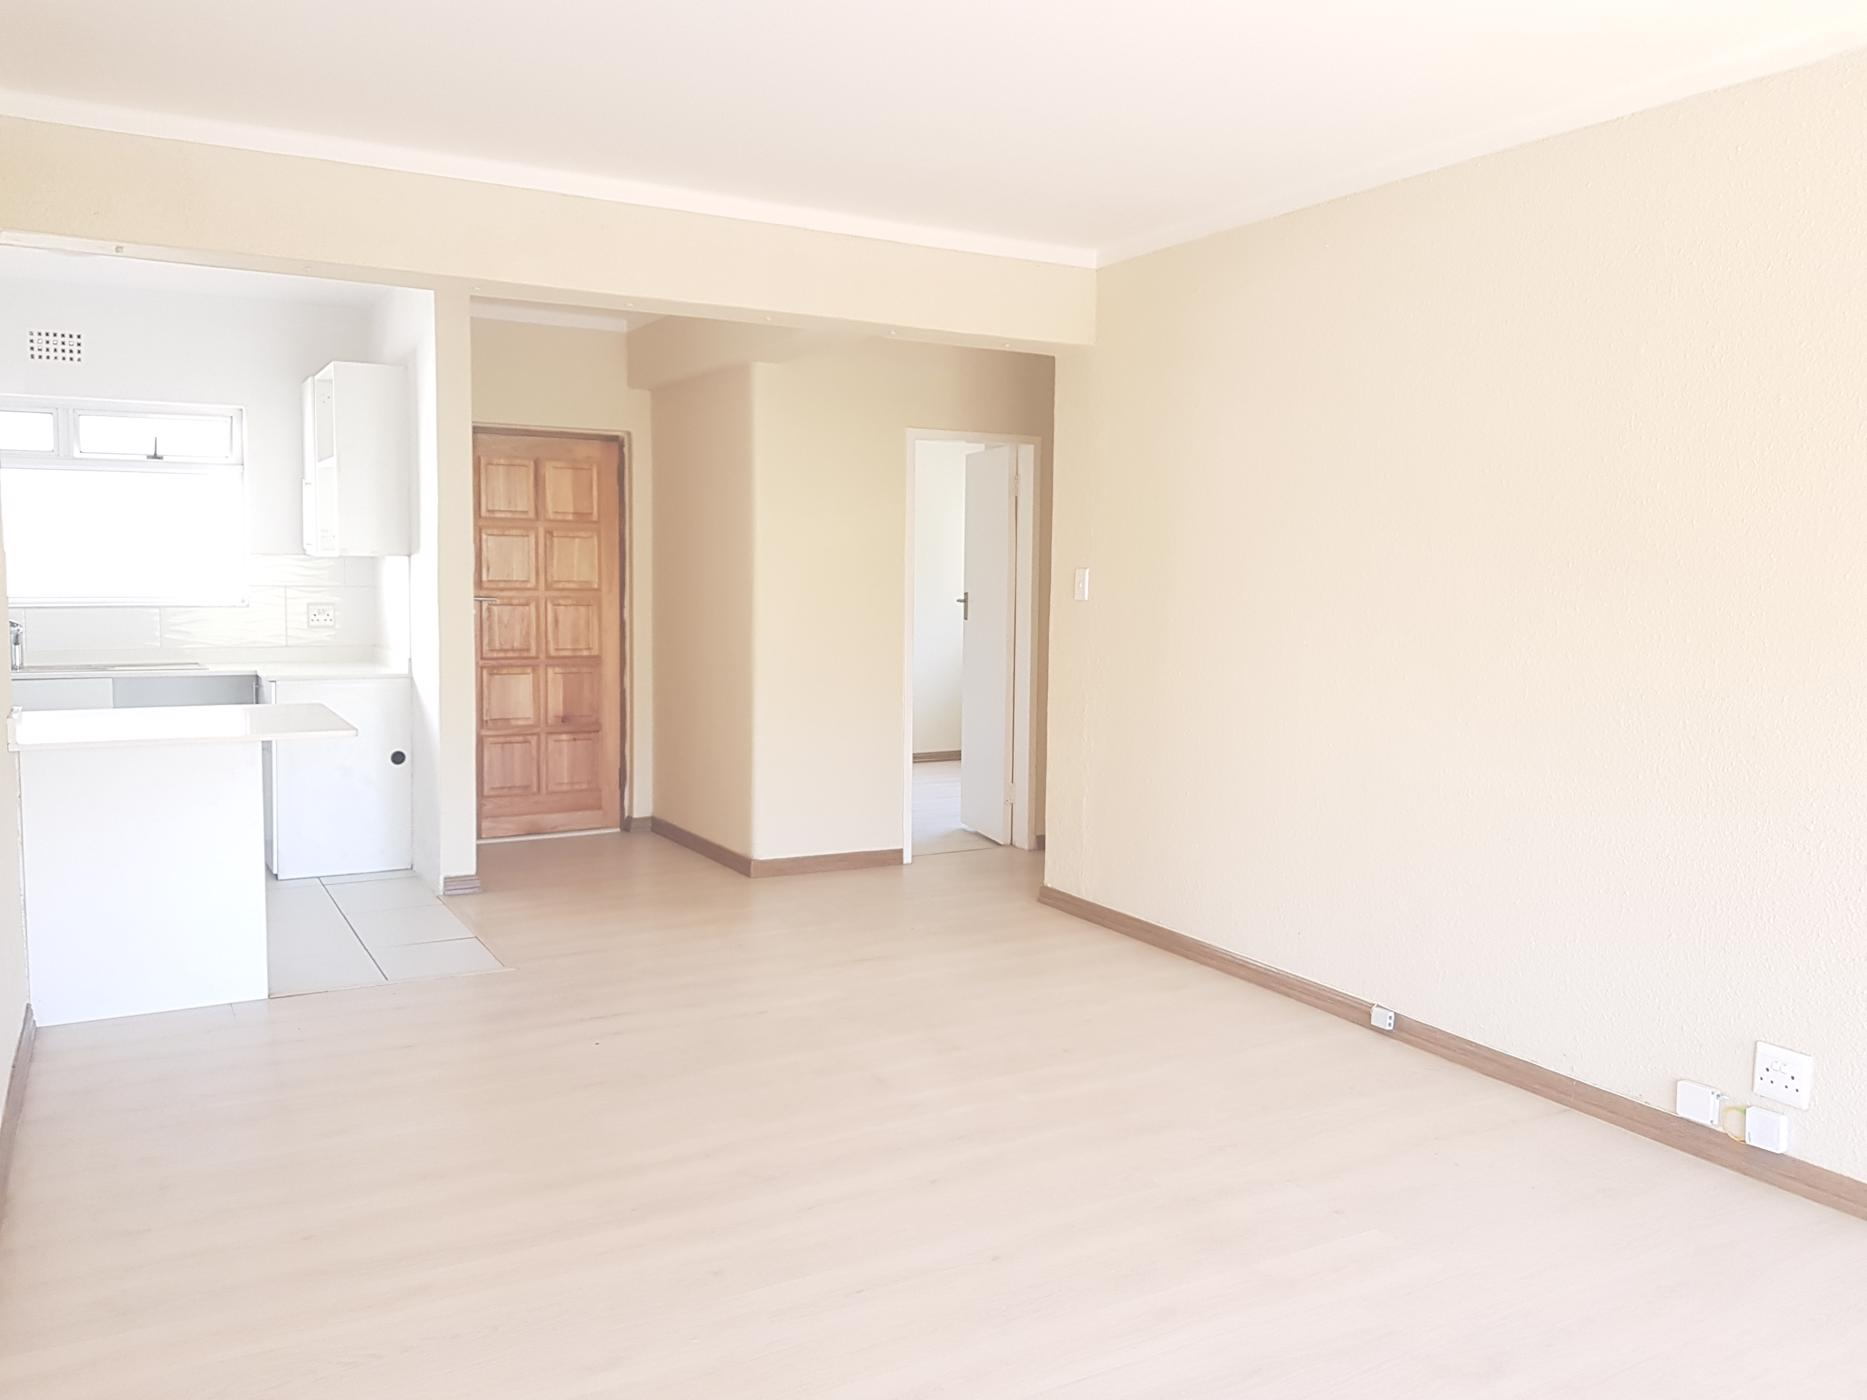 https://listing.pamgolding.co.za/images/properties/201812/1135858/H/1135858_H_4.jpg